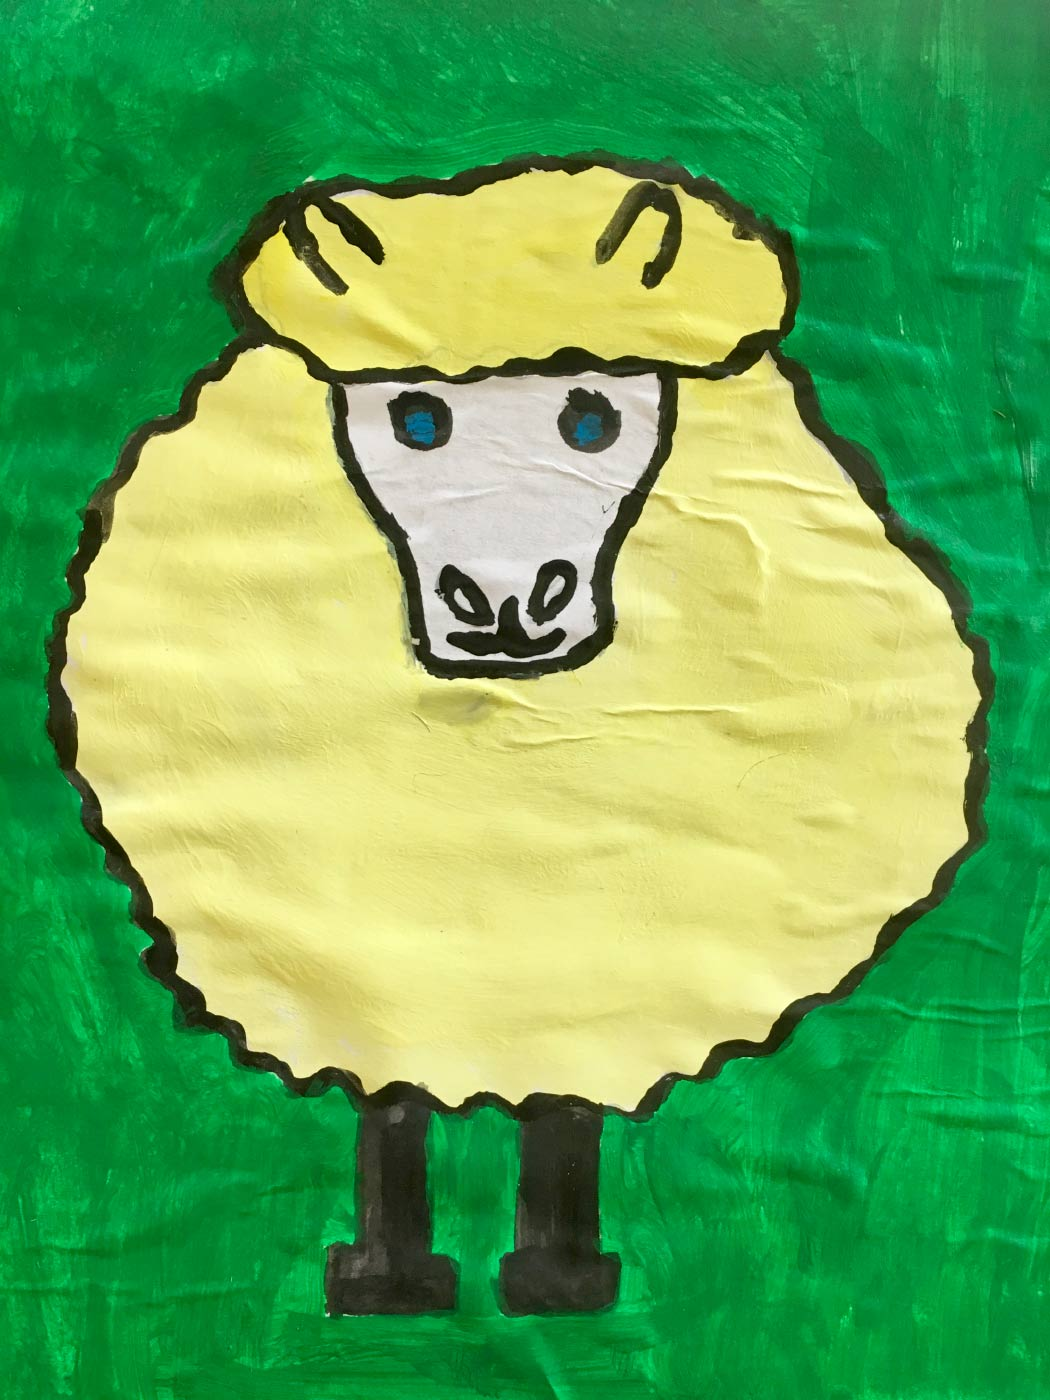 Illustration of a sheep on paper created with textas and paint.